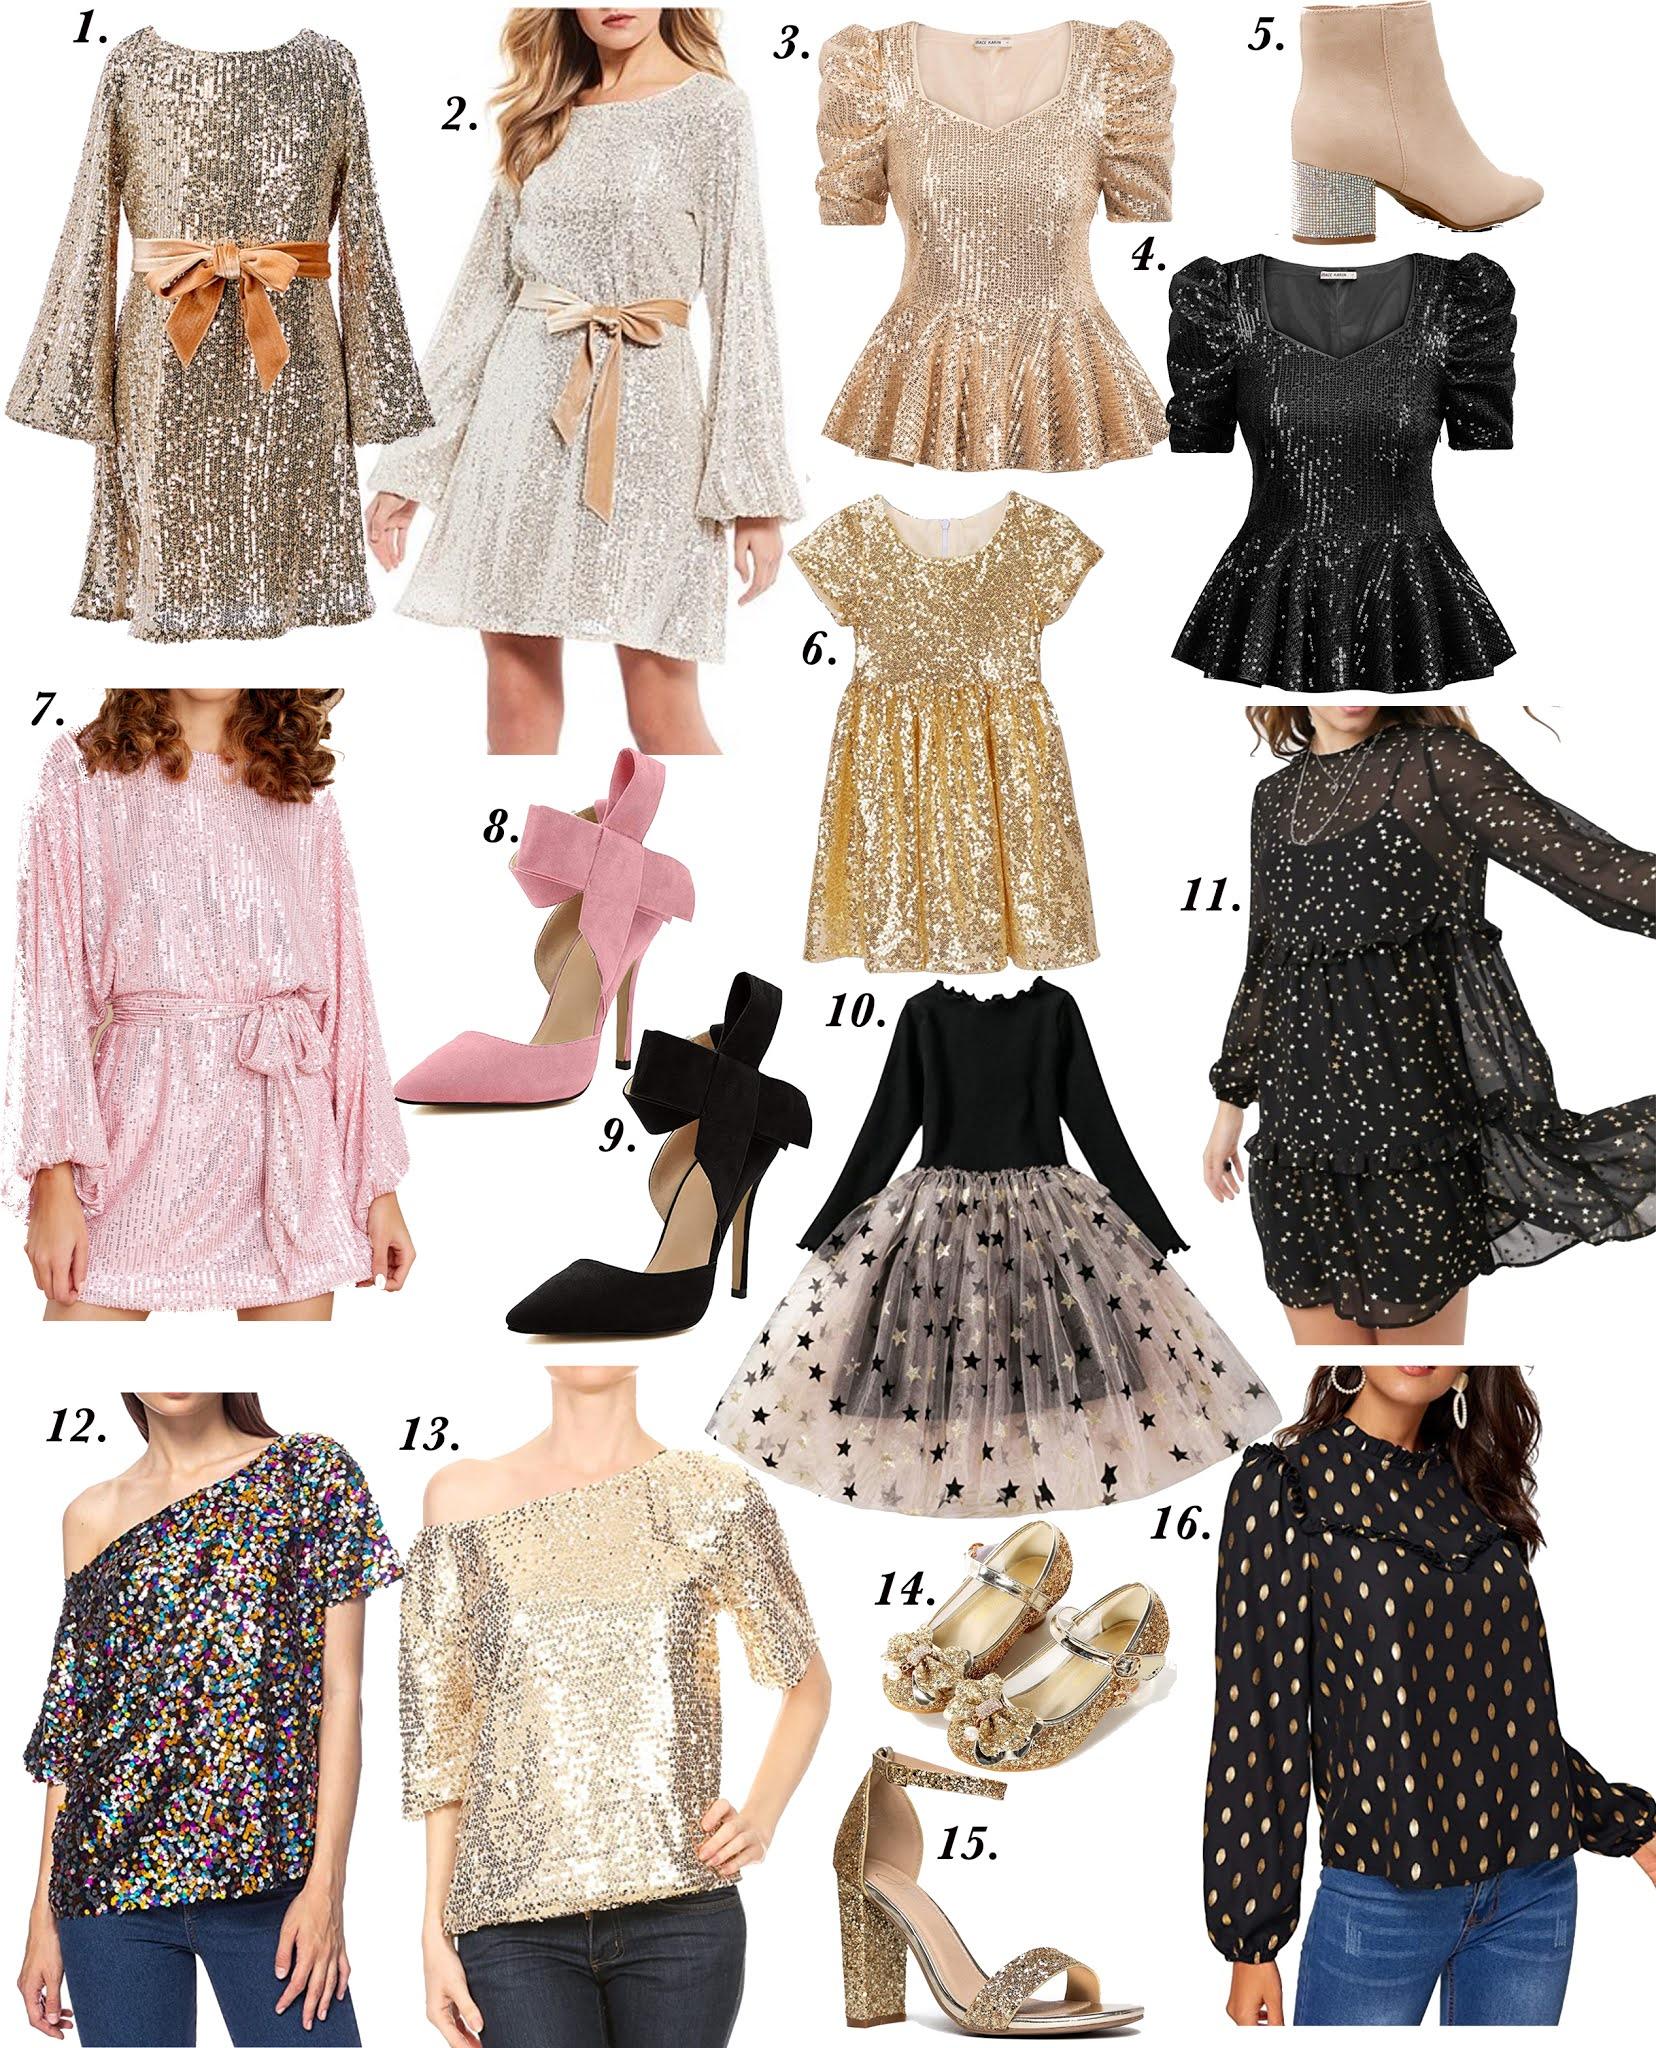 New Years Eve Outfit Inspiration: Sparkle in 2021 - Something Delightful Blog #NYEOutfitInspo #sparkles #sequinoutfits #mommyandme